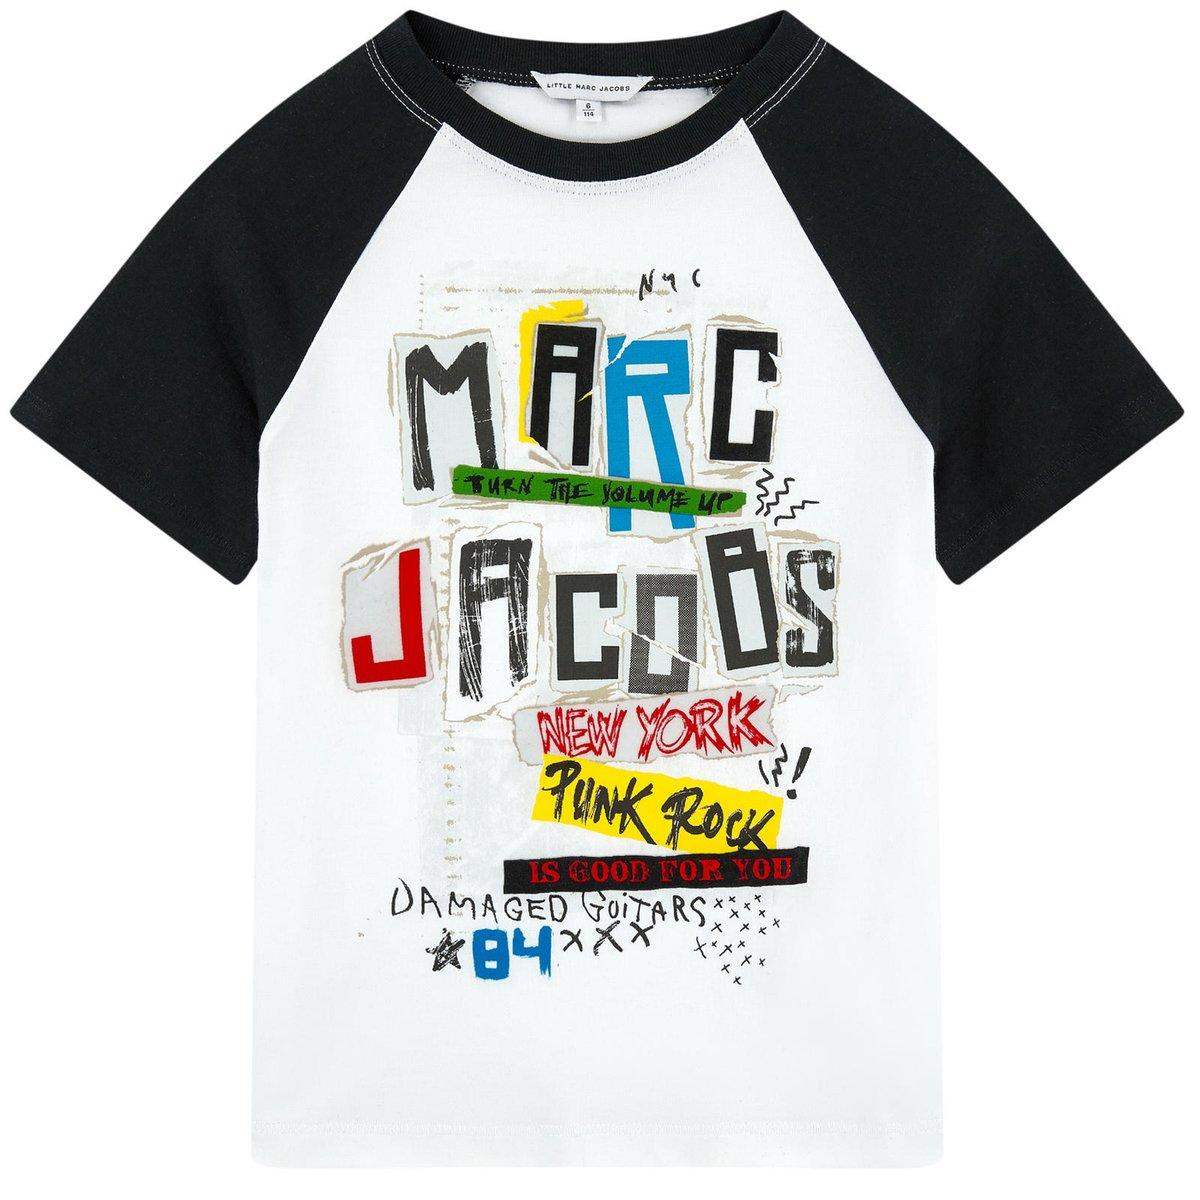 Image of Marc Jacobs Boys White and Black Printed Rock 'n' Roll T-shirt